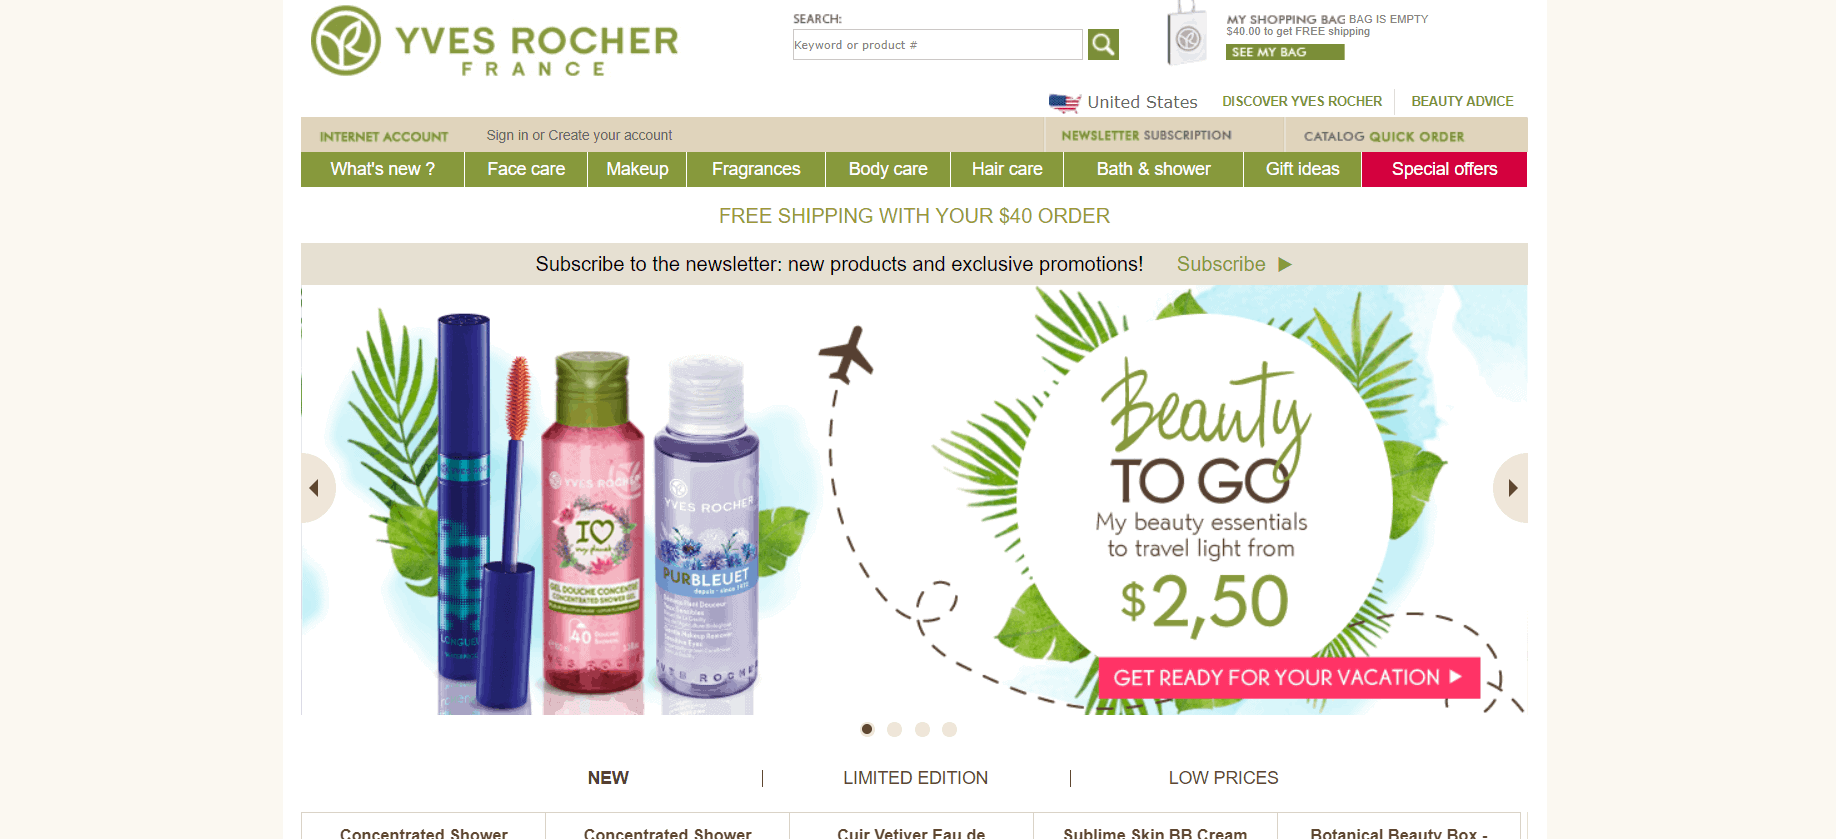 Yves Rocher France Review